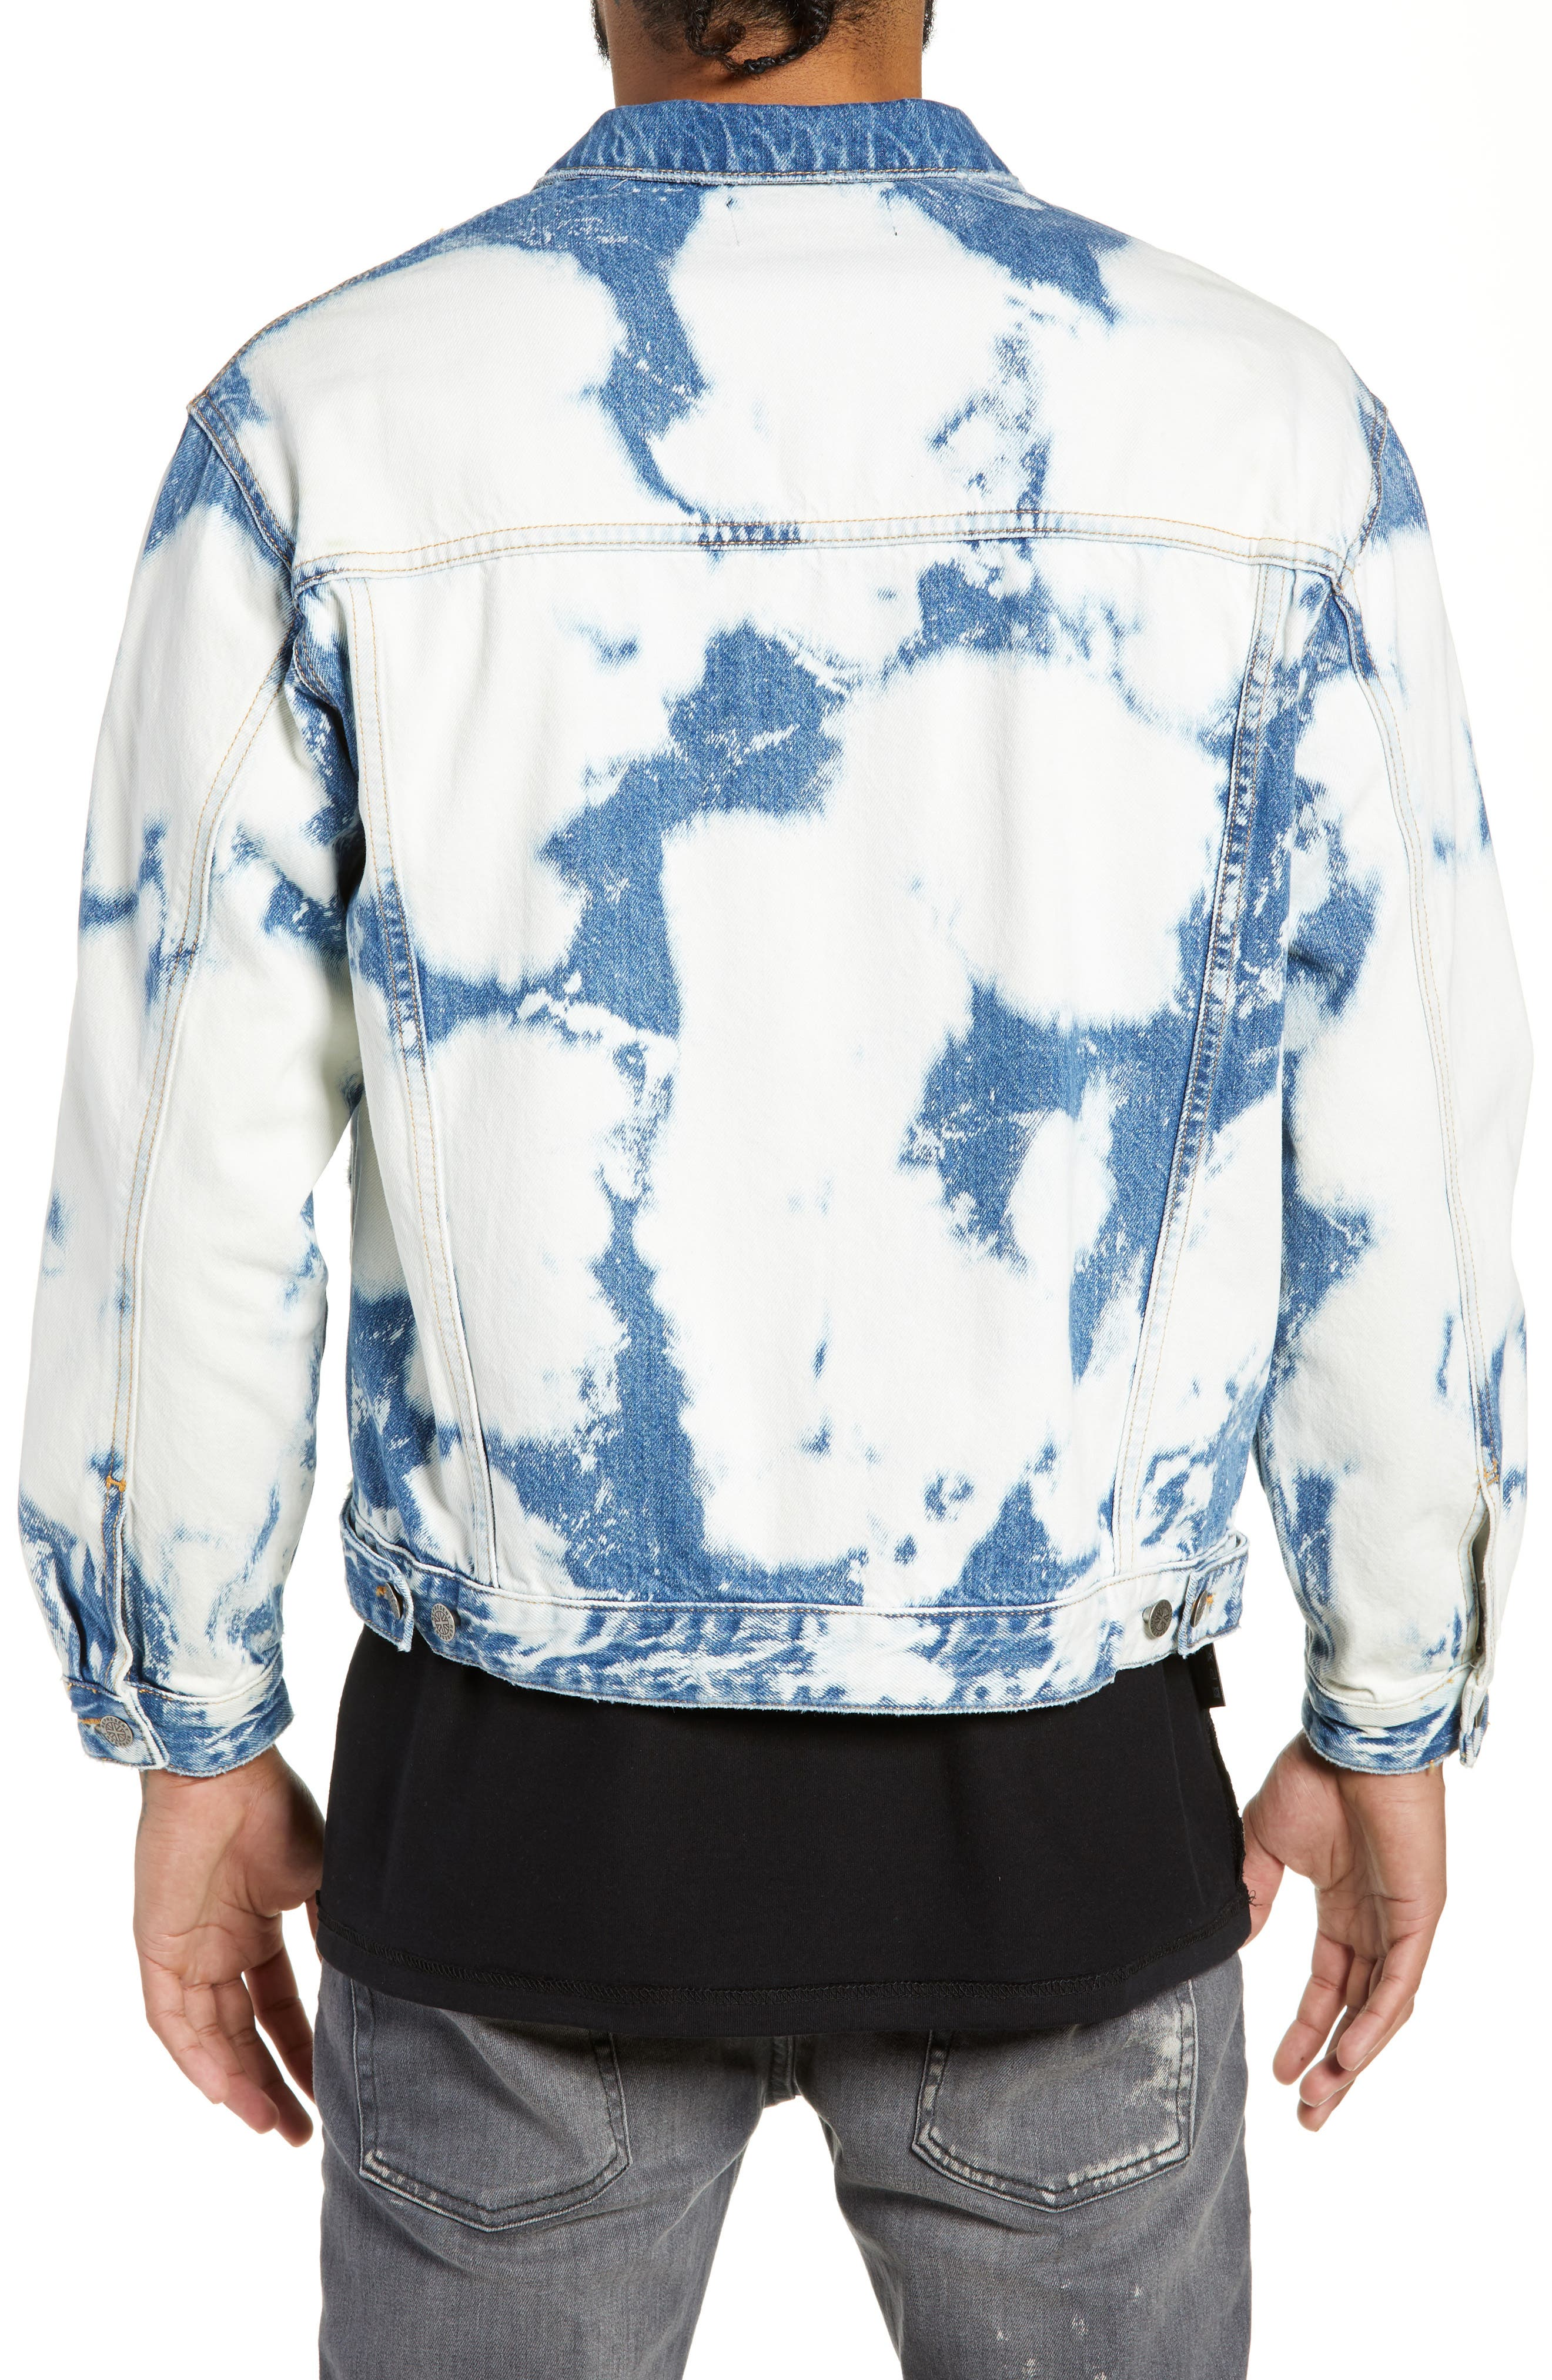 Stained Denim Jacket,                             Alternate thumbnail 2, color,                             STAINED